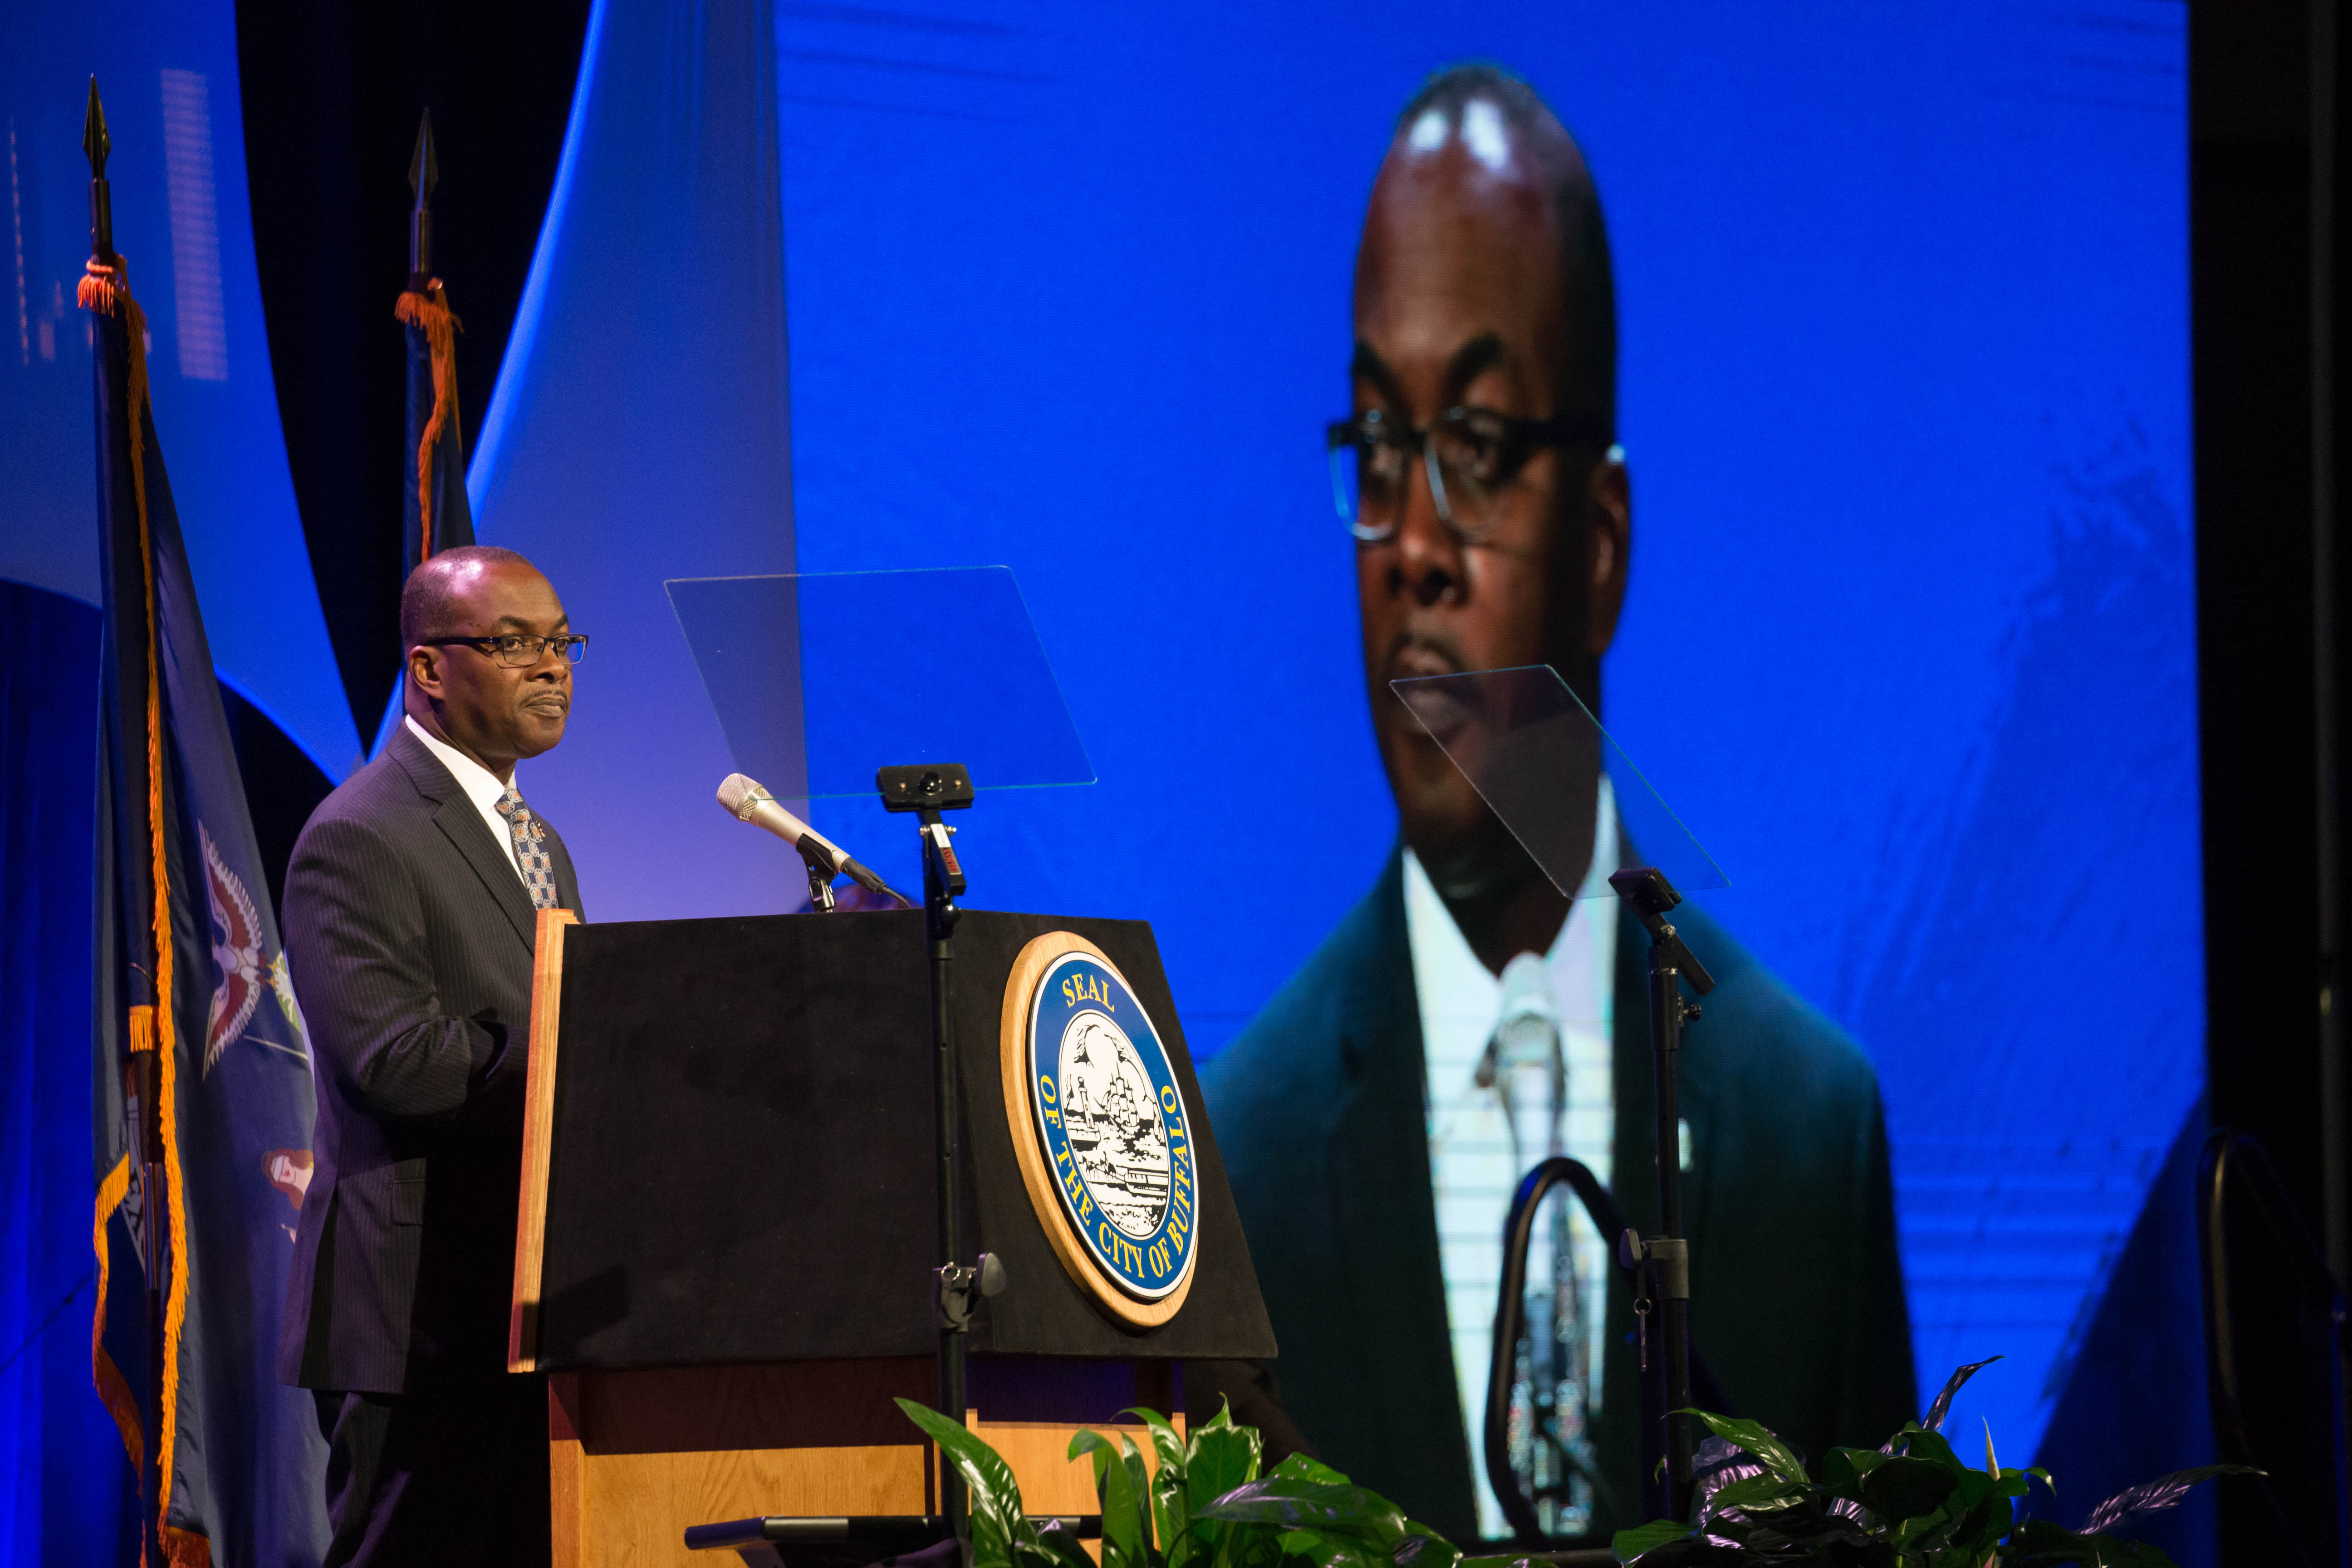 Buffalo Mayor Byron Brown, shown here delivering the State of the City at the Buffalo Niagara Convention Center on Feb. 17. (Derek Gee/News file photo)